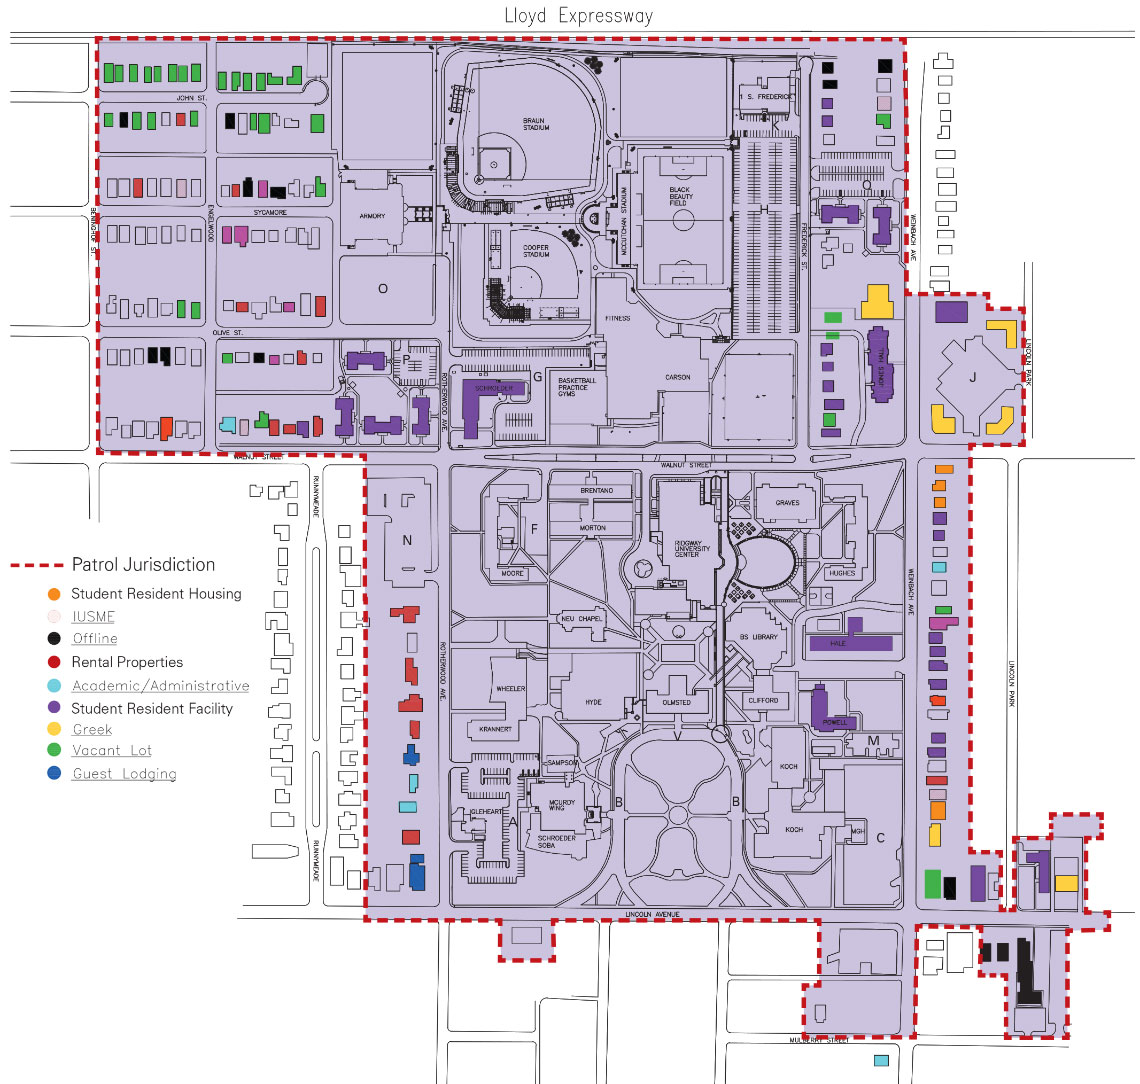 university of evansville campus map Clery Jurisdiction Map Safety And Security University Of university of evansville campus map